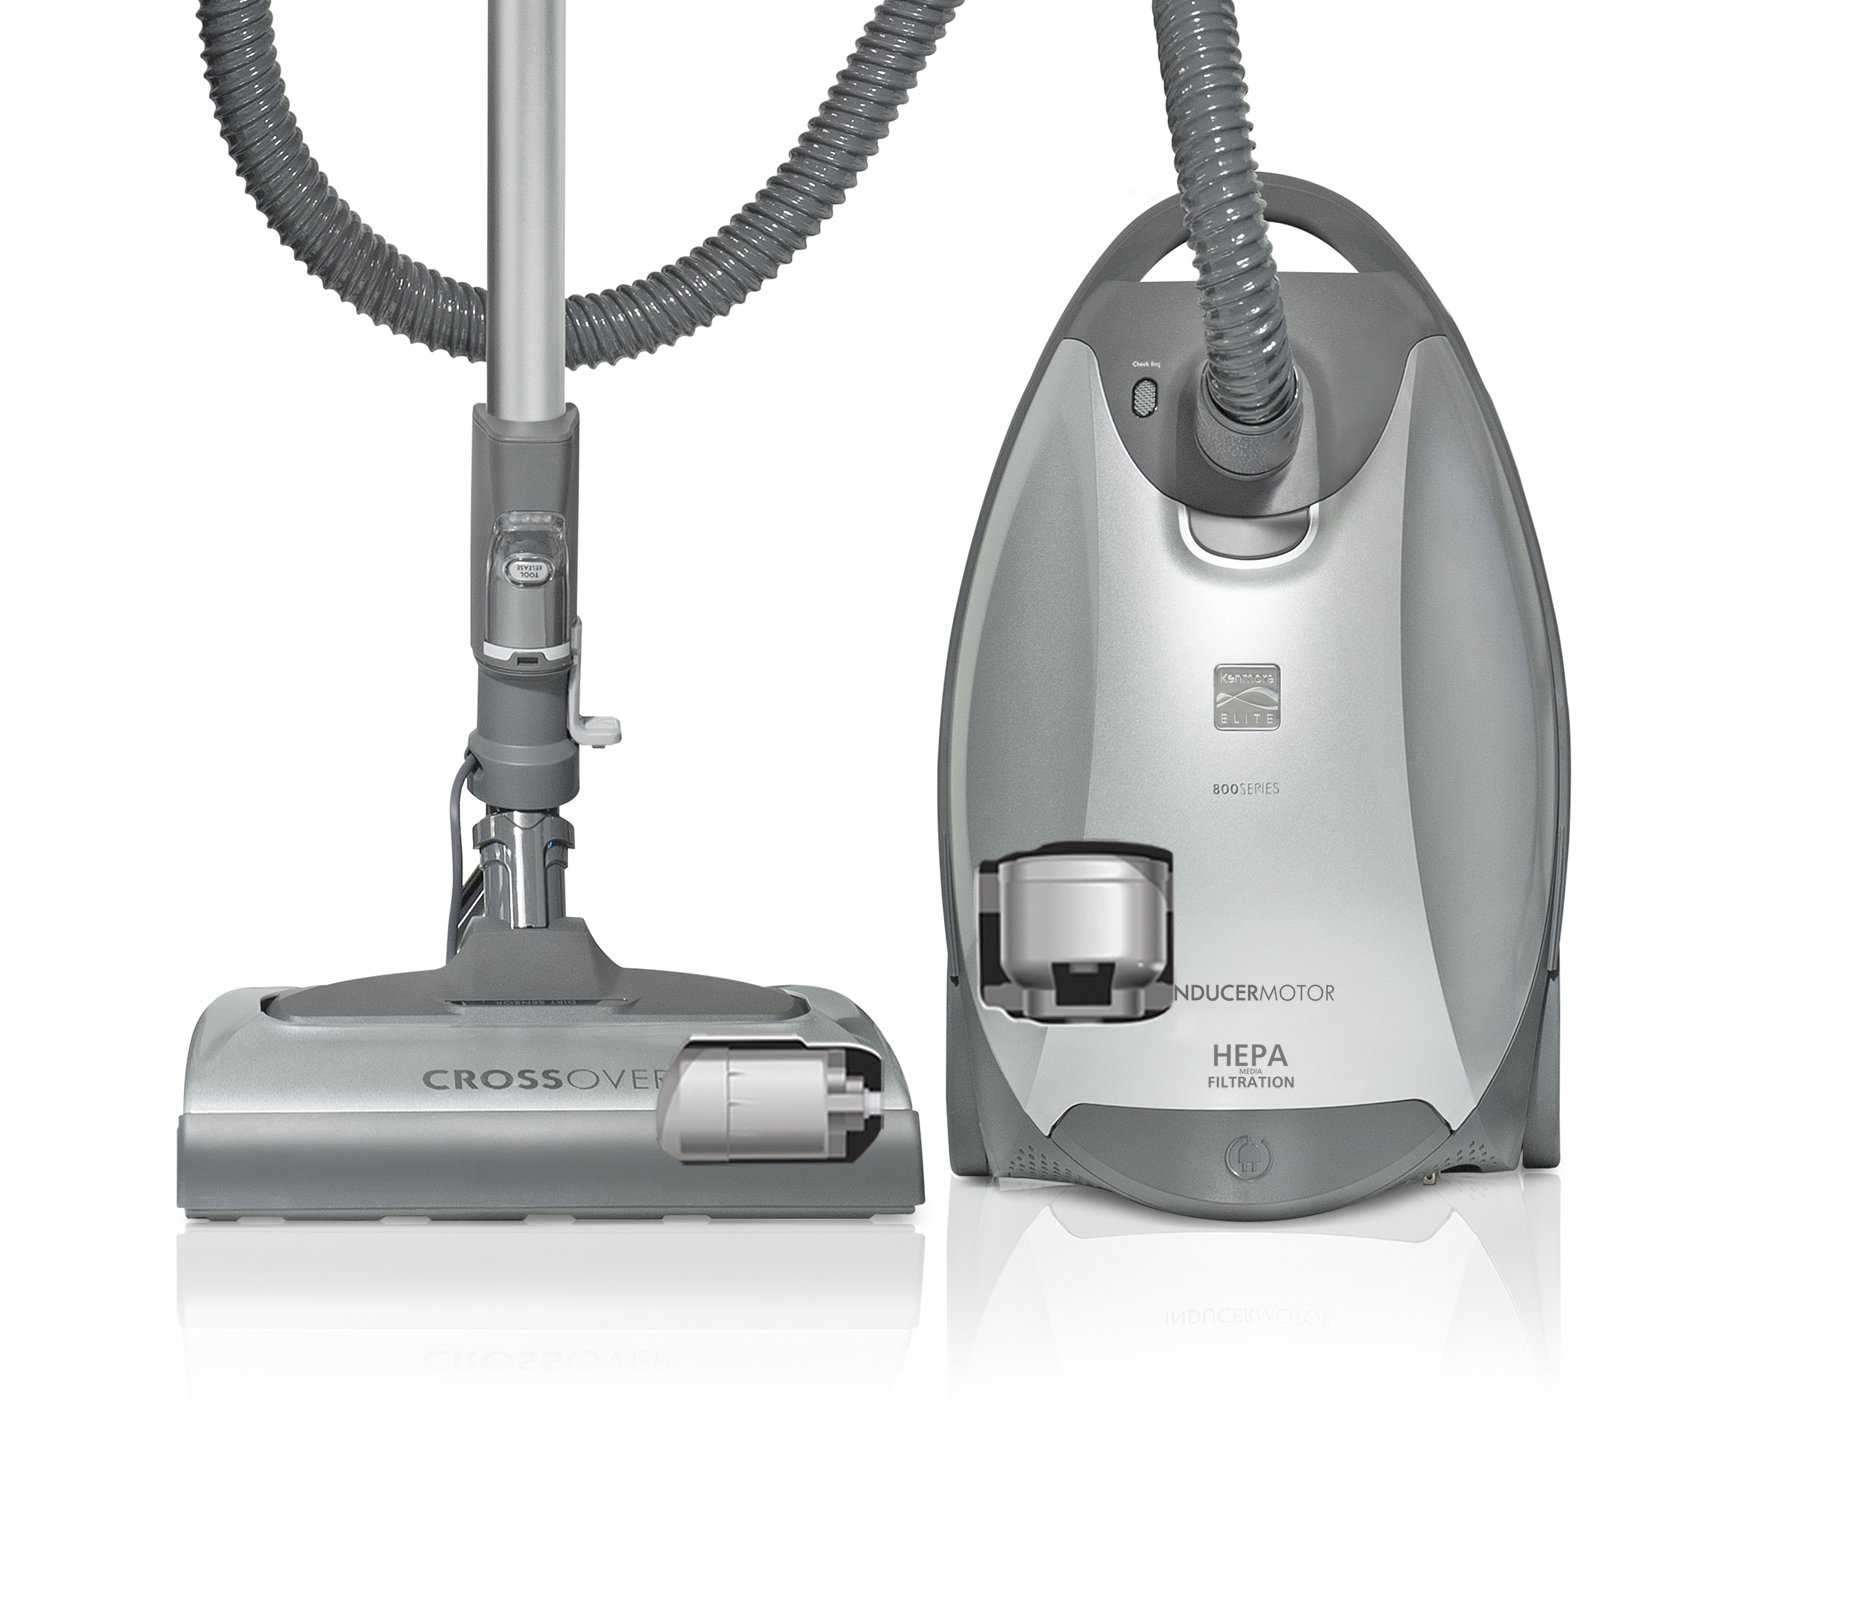 Kenmore Floorcare Elite Pet Friendly Crossover Canister Vac, Silver/Gray by Kenmore